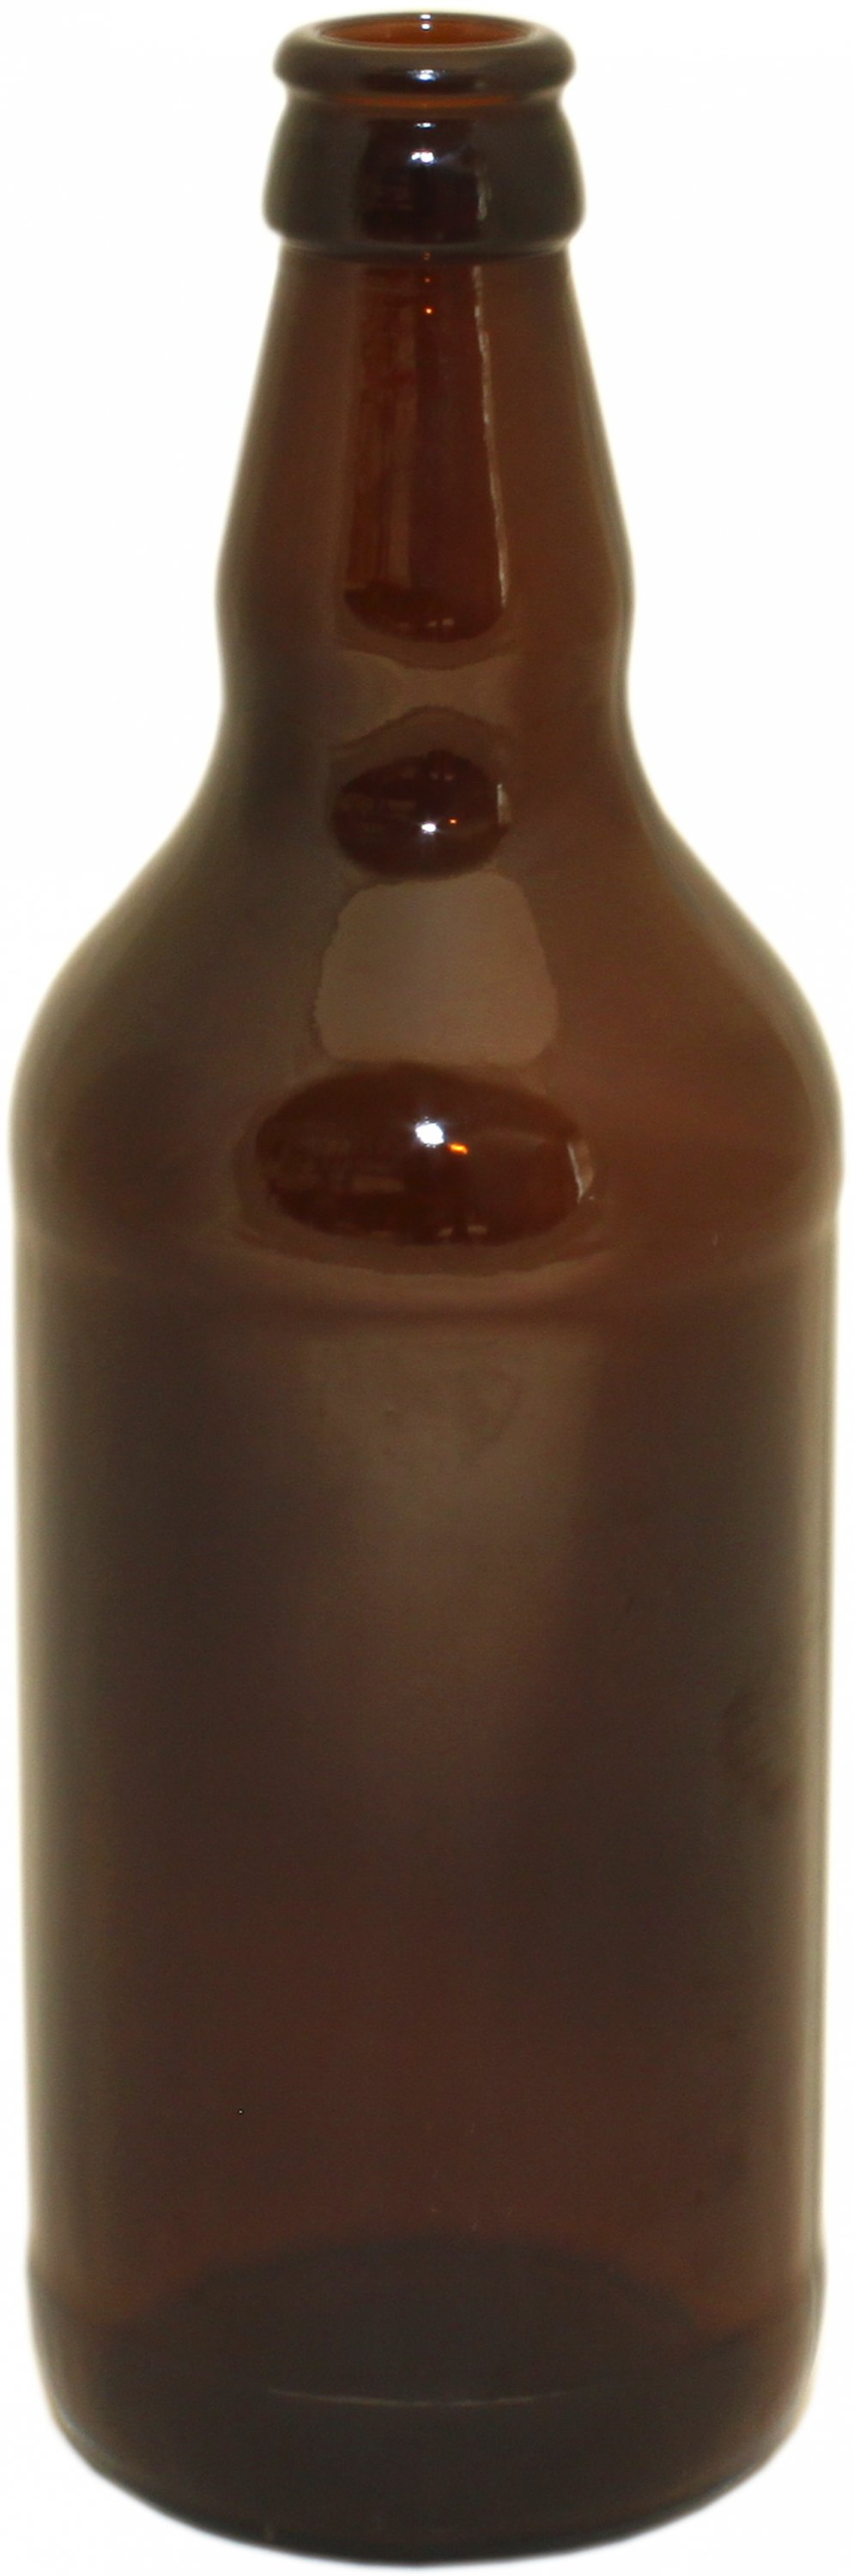 Beer Bottle 500ml